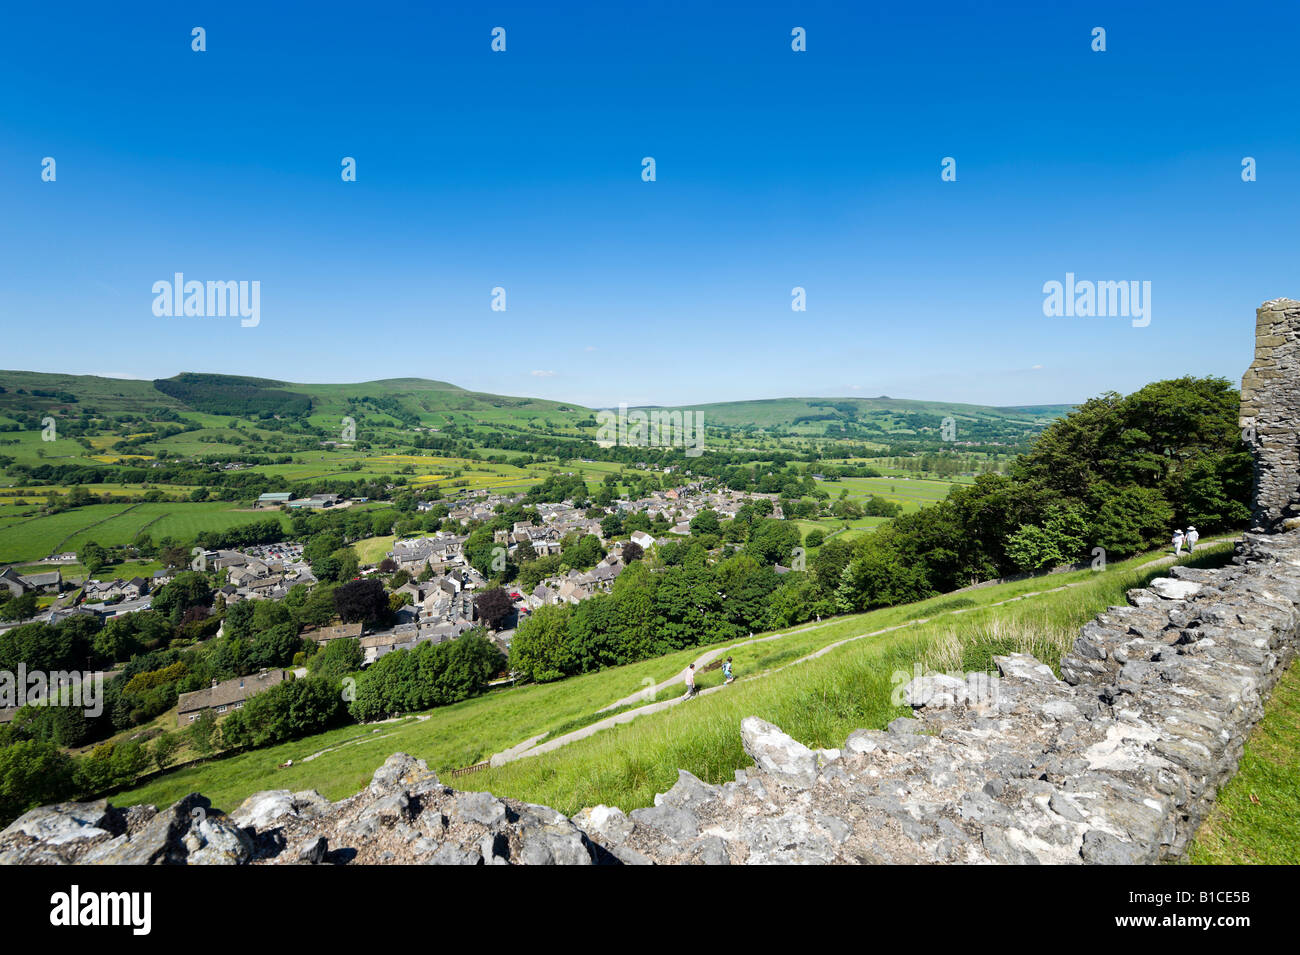 View from the walls of Peveril Castle over the village of Castleton, Peak District, Derbyshire, England, United - Stock Image